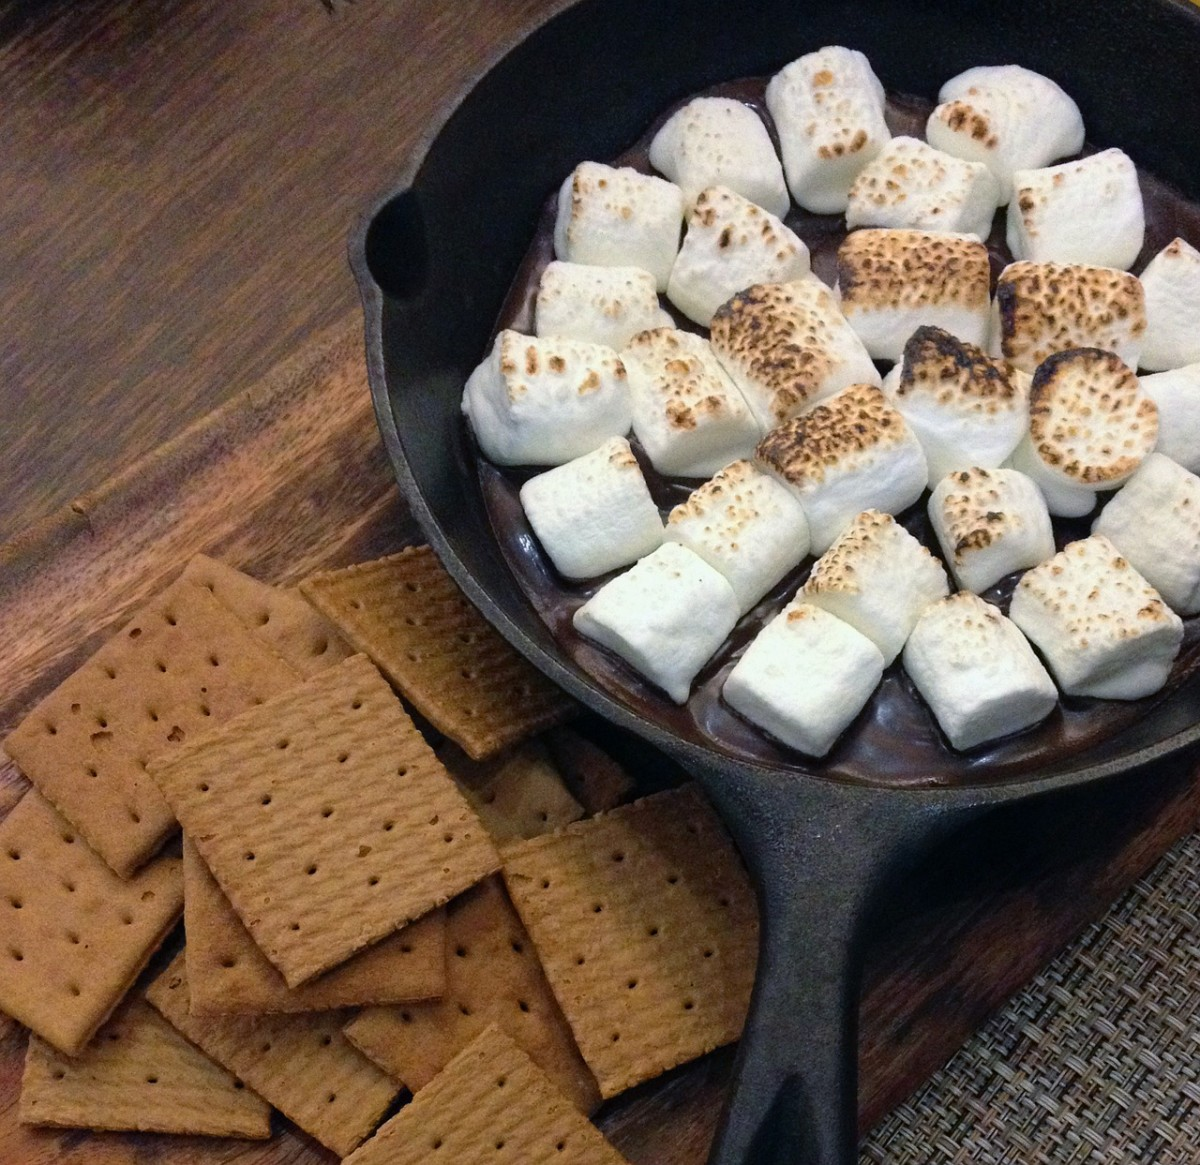 Why not try making s'more bars?